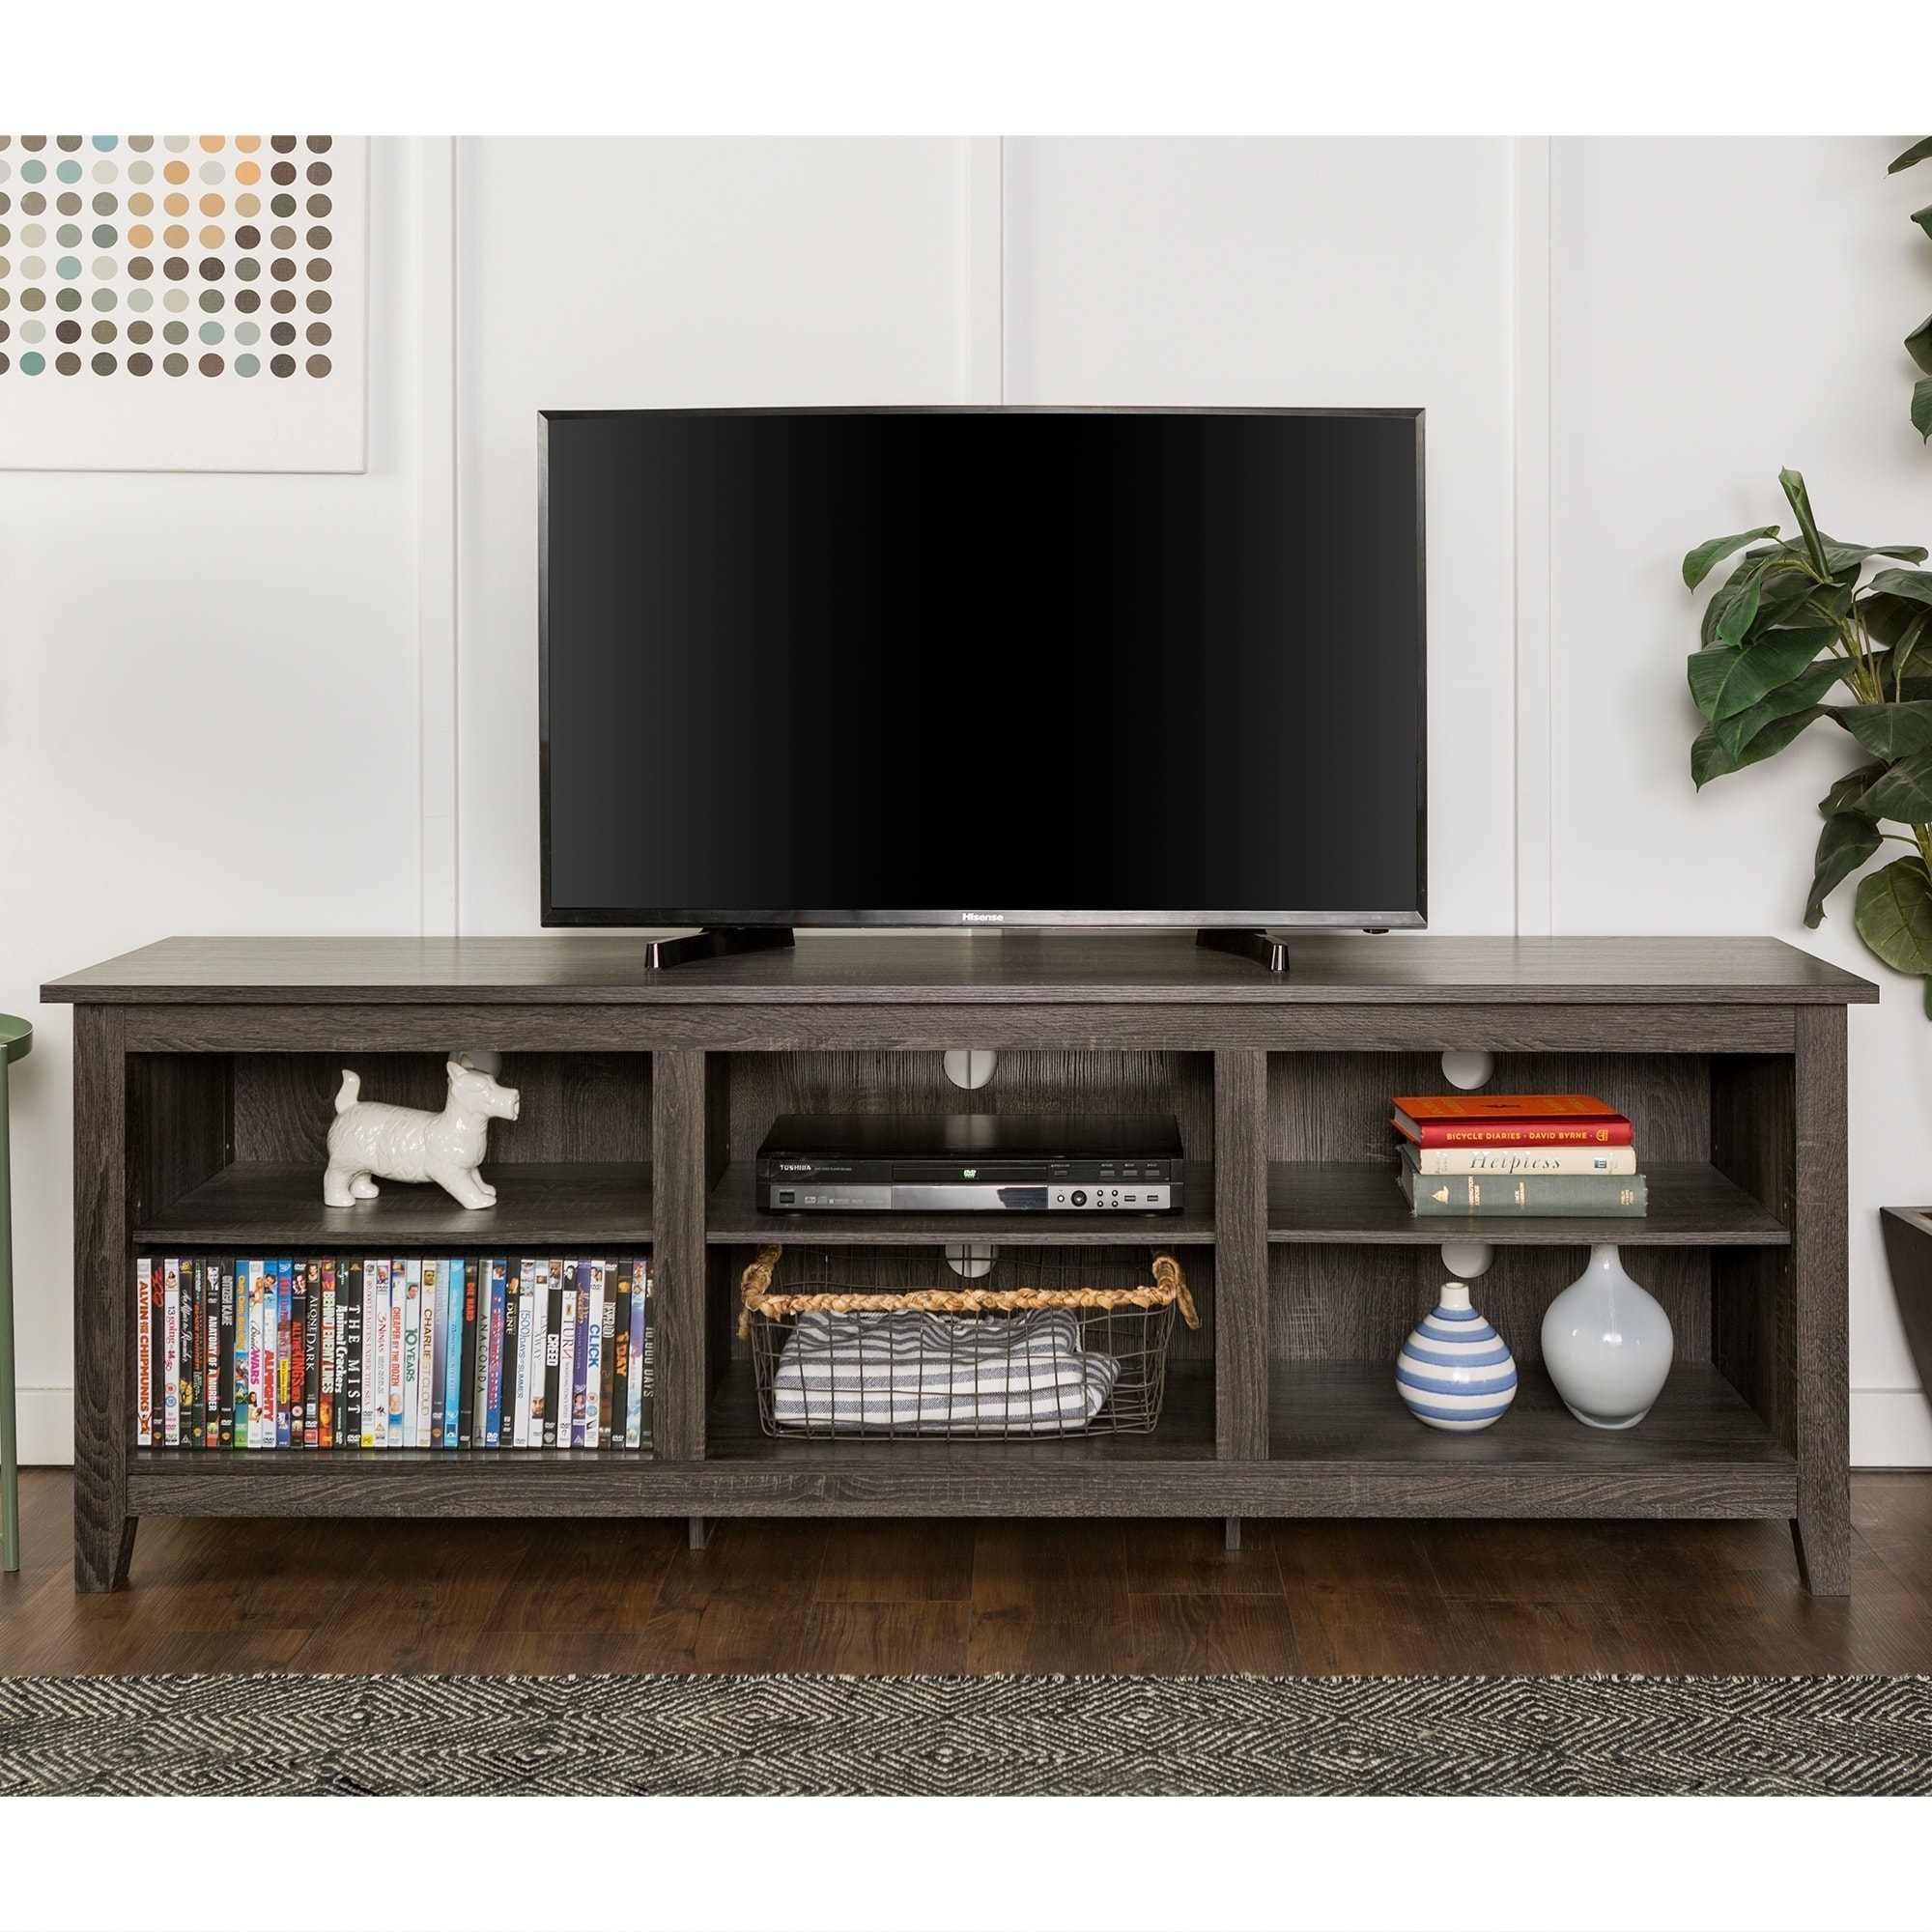 Shop 70-inch Wood Media TV Stand